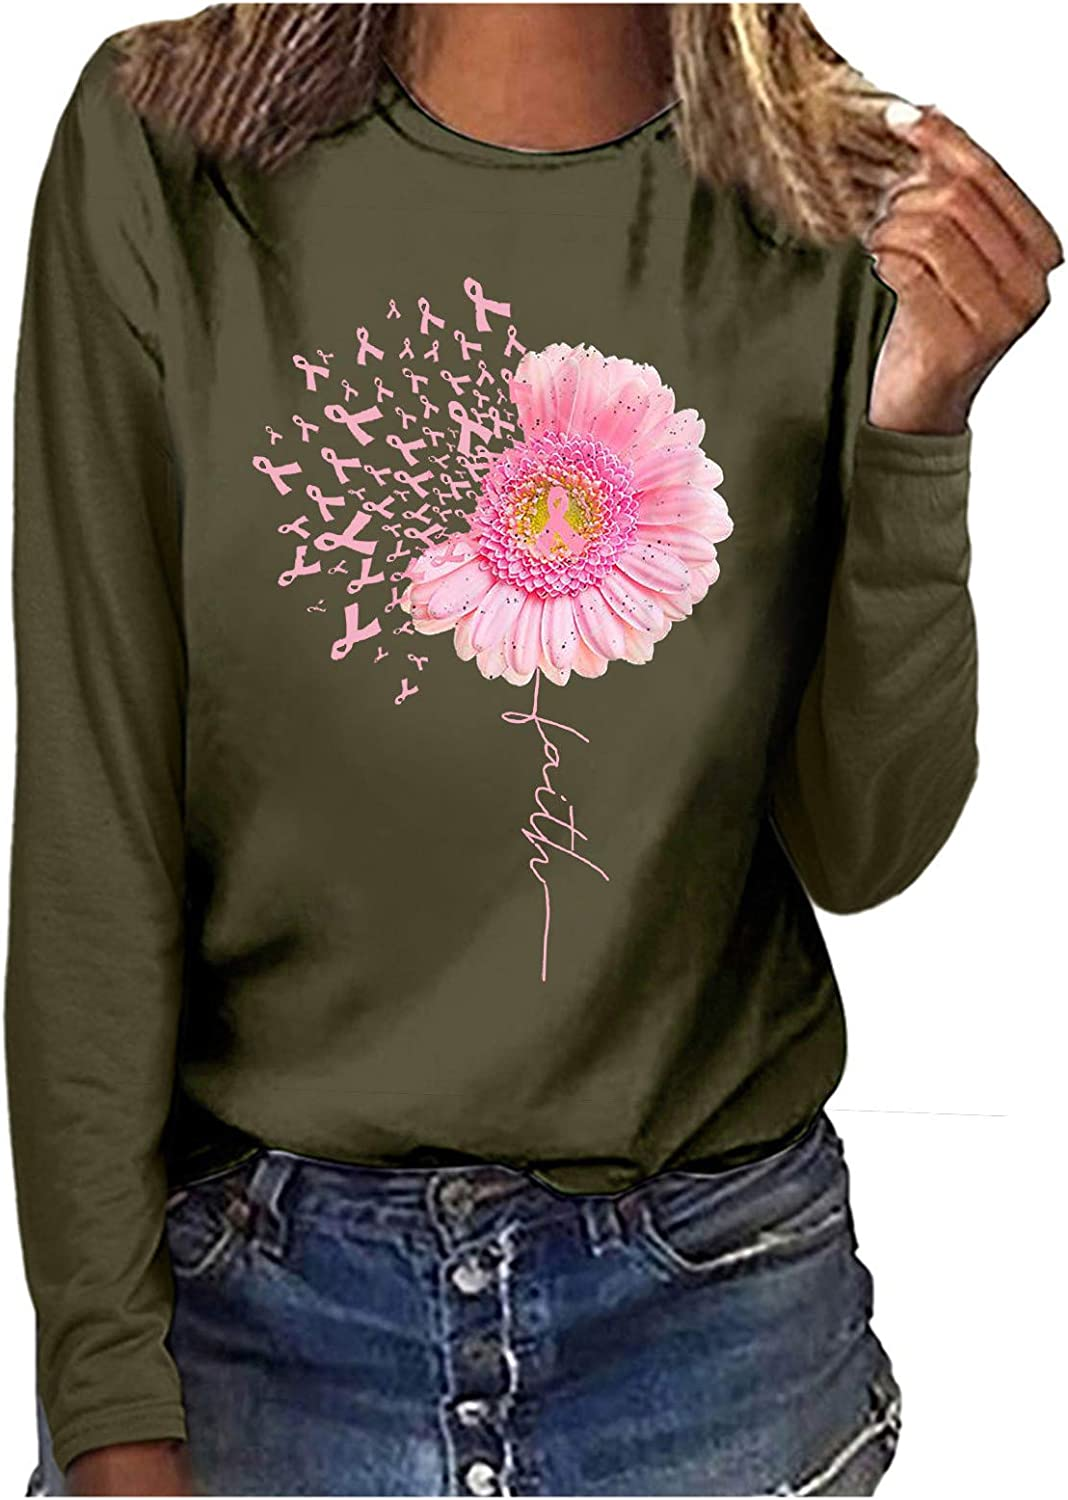 Sweatshirts for Women,Women's Casual Sunflower Printed Long Sleeve Loose Crewneck Cute Pullover Tops Shirts